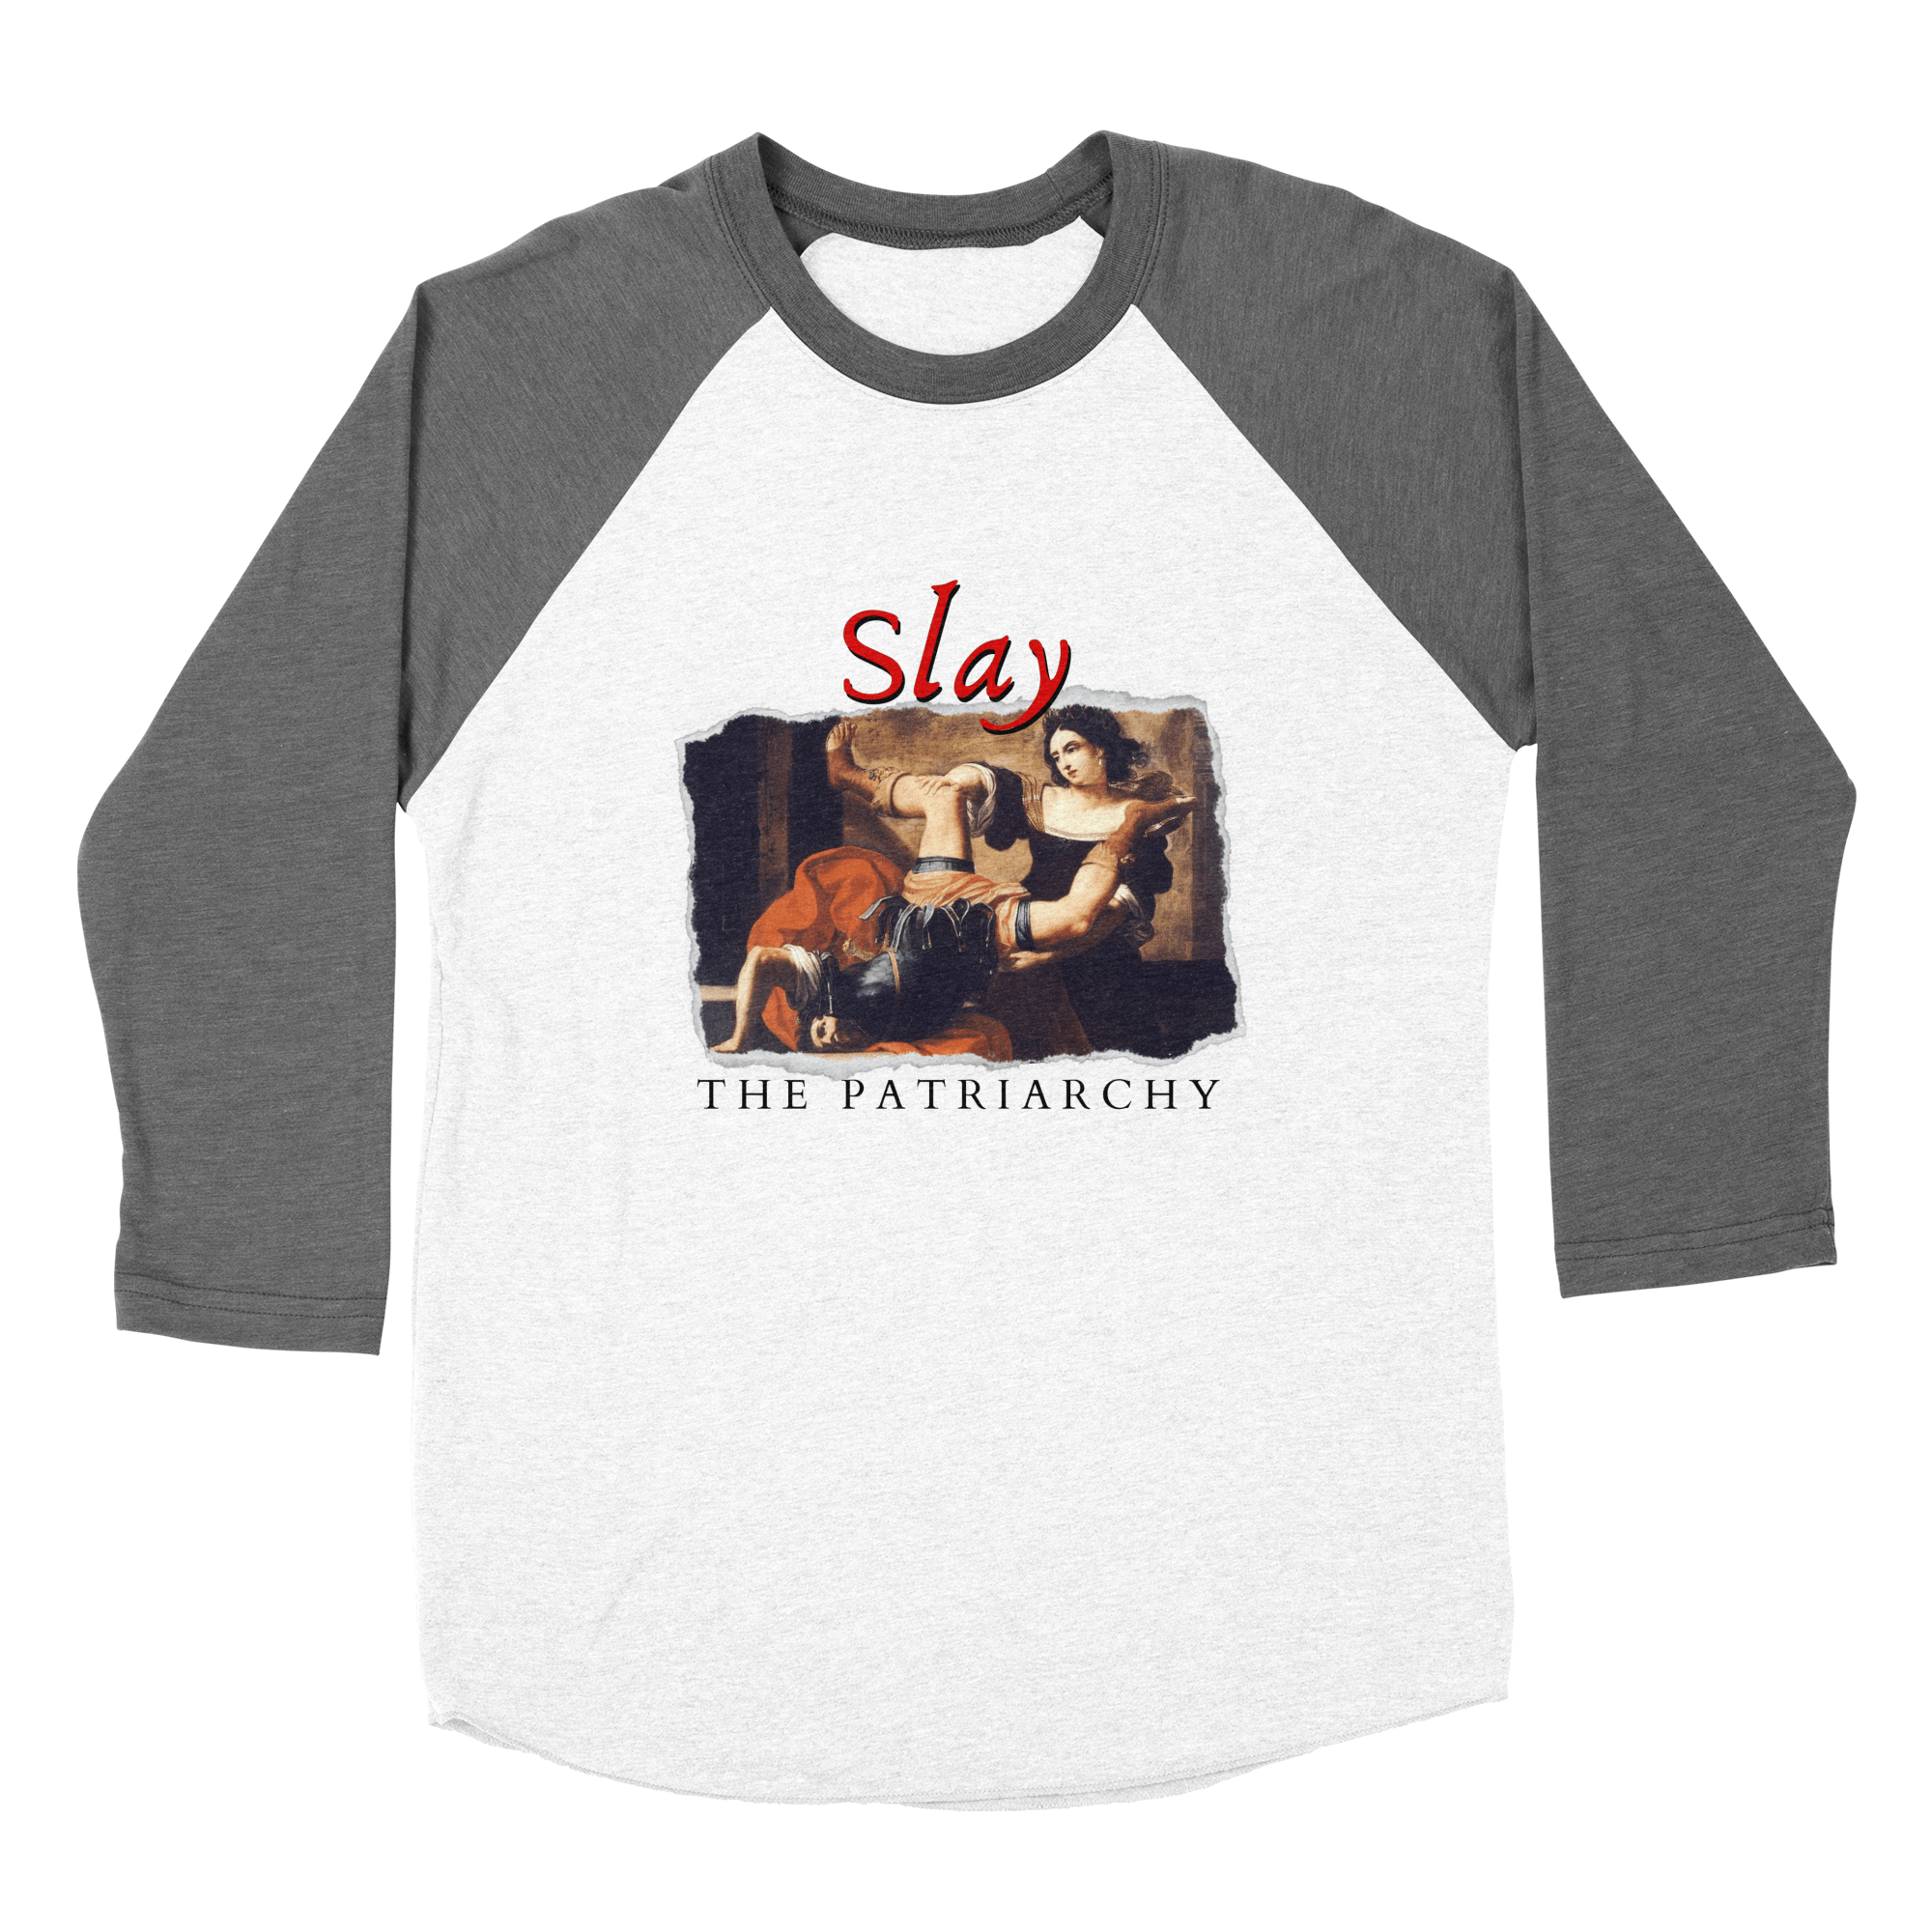 Baseball t-shirt with image of fine art woman slaying man and text Slay the Patriarchy